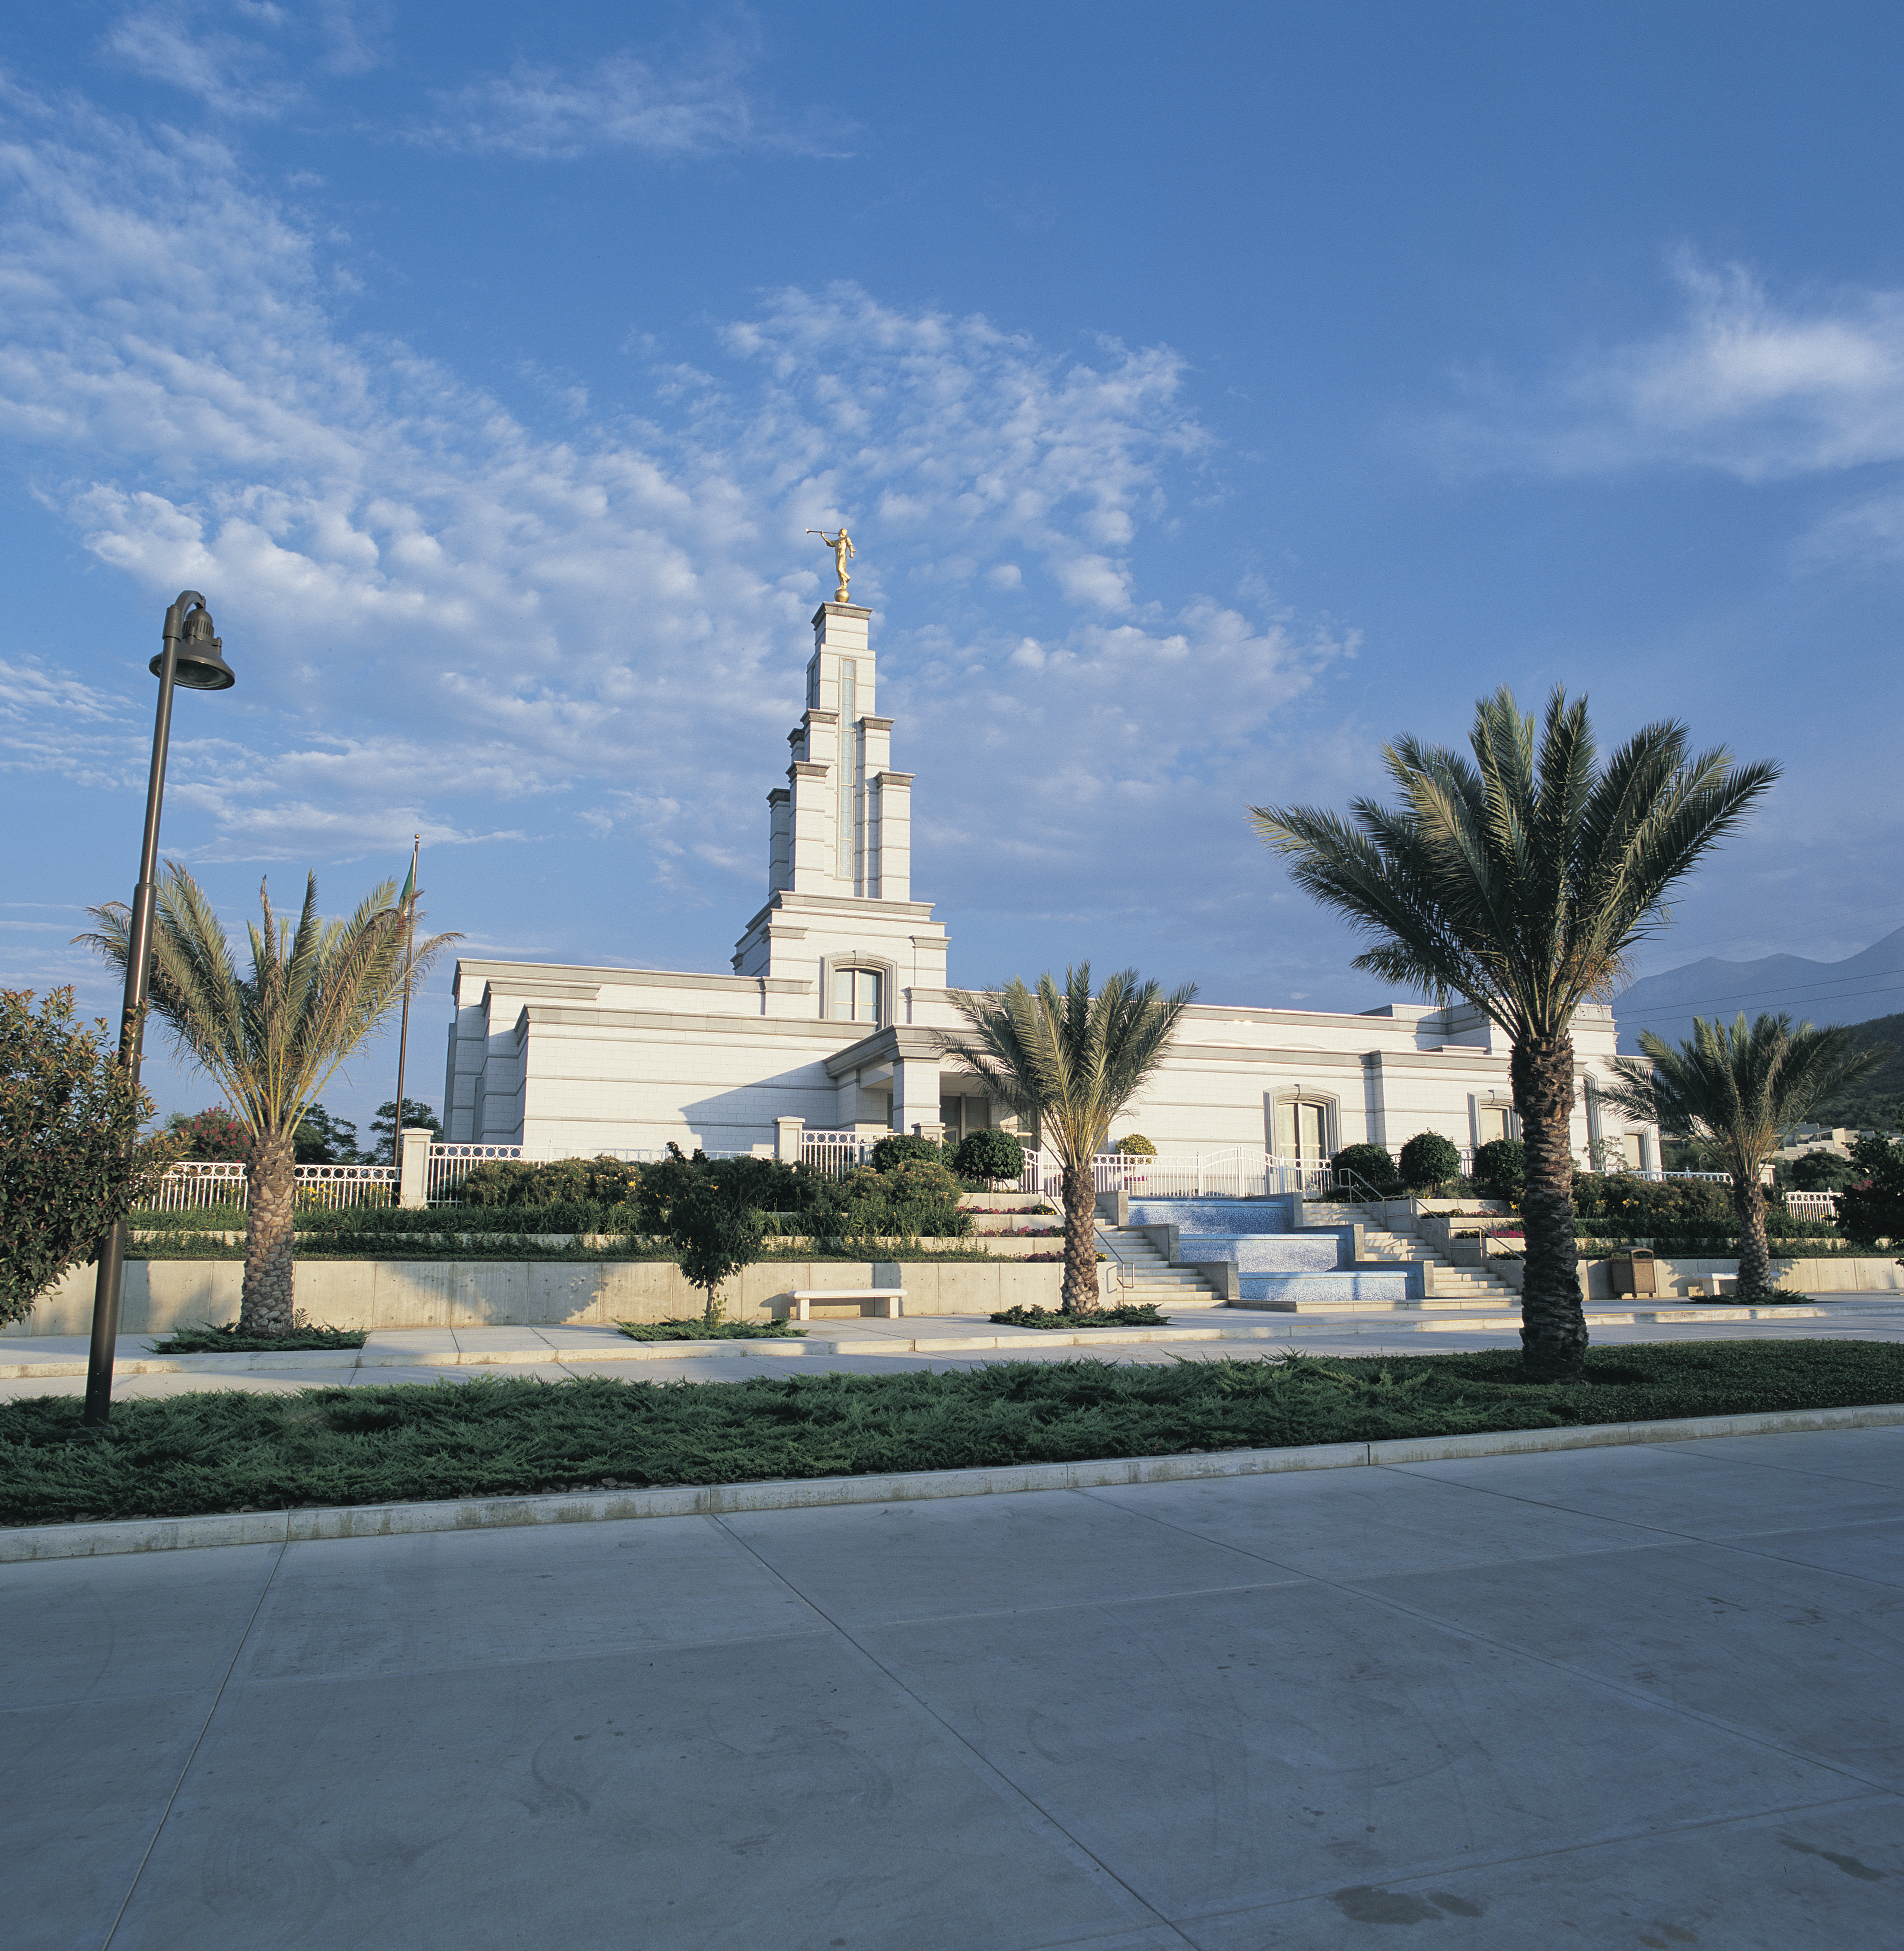 The Monterrey Mexico Temple and grounds.